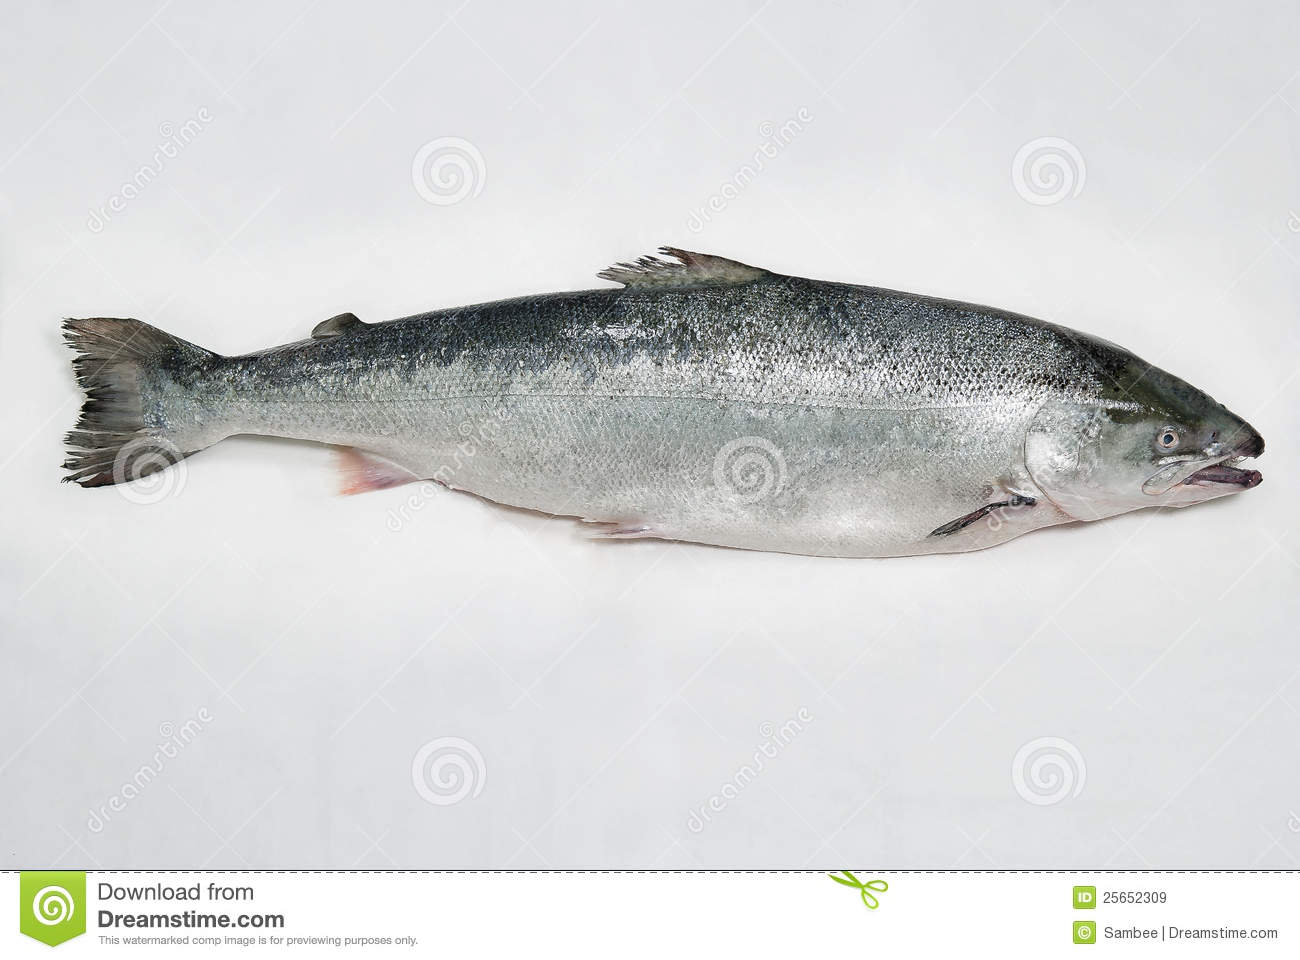 Salmon fish royalty free stock images image 25652309 for Salmon fish images